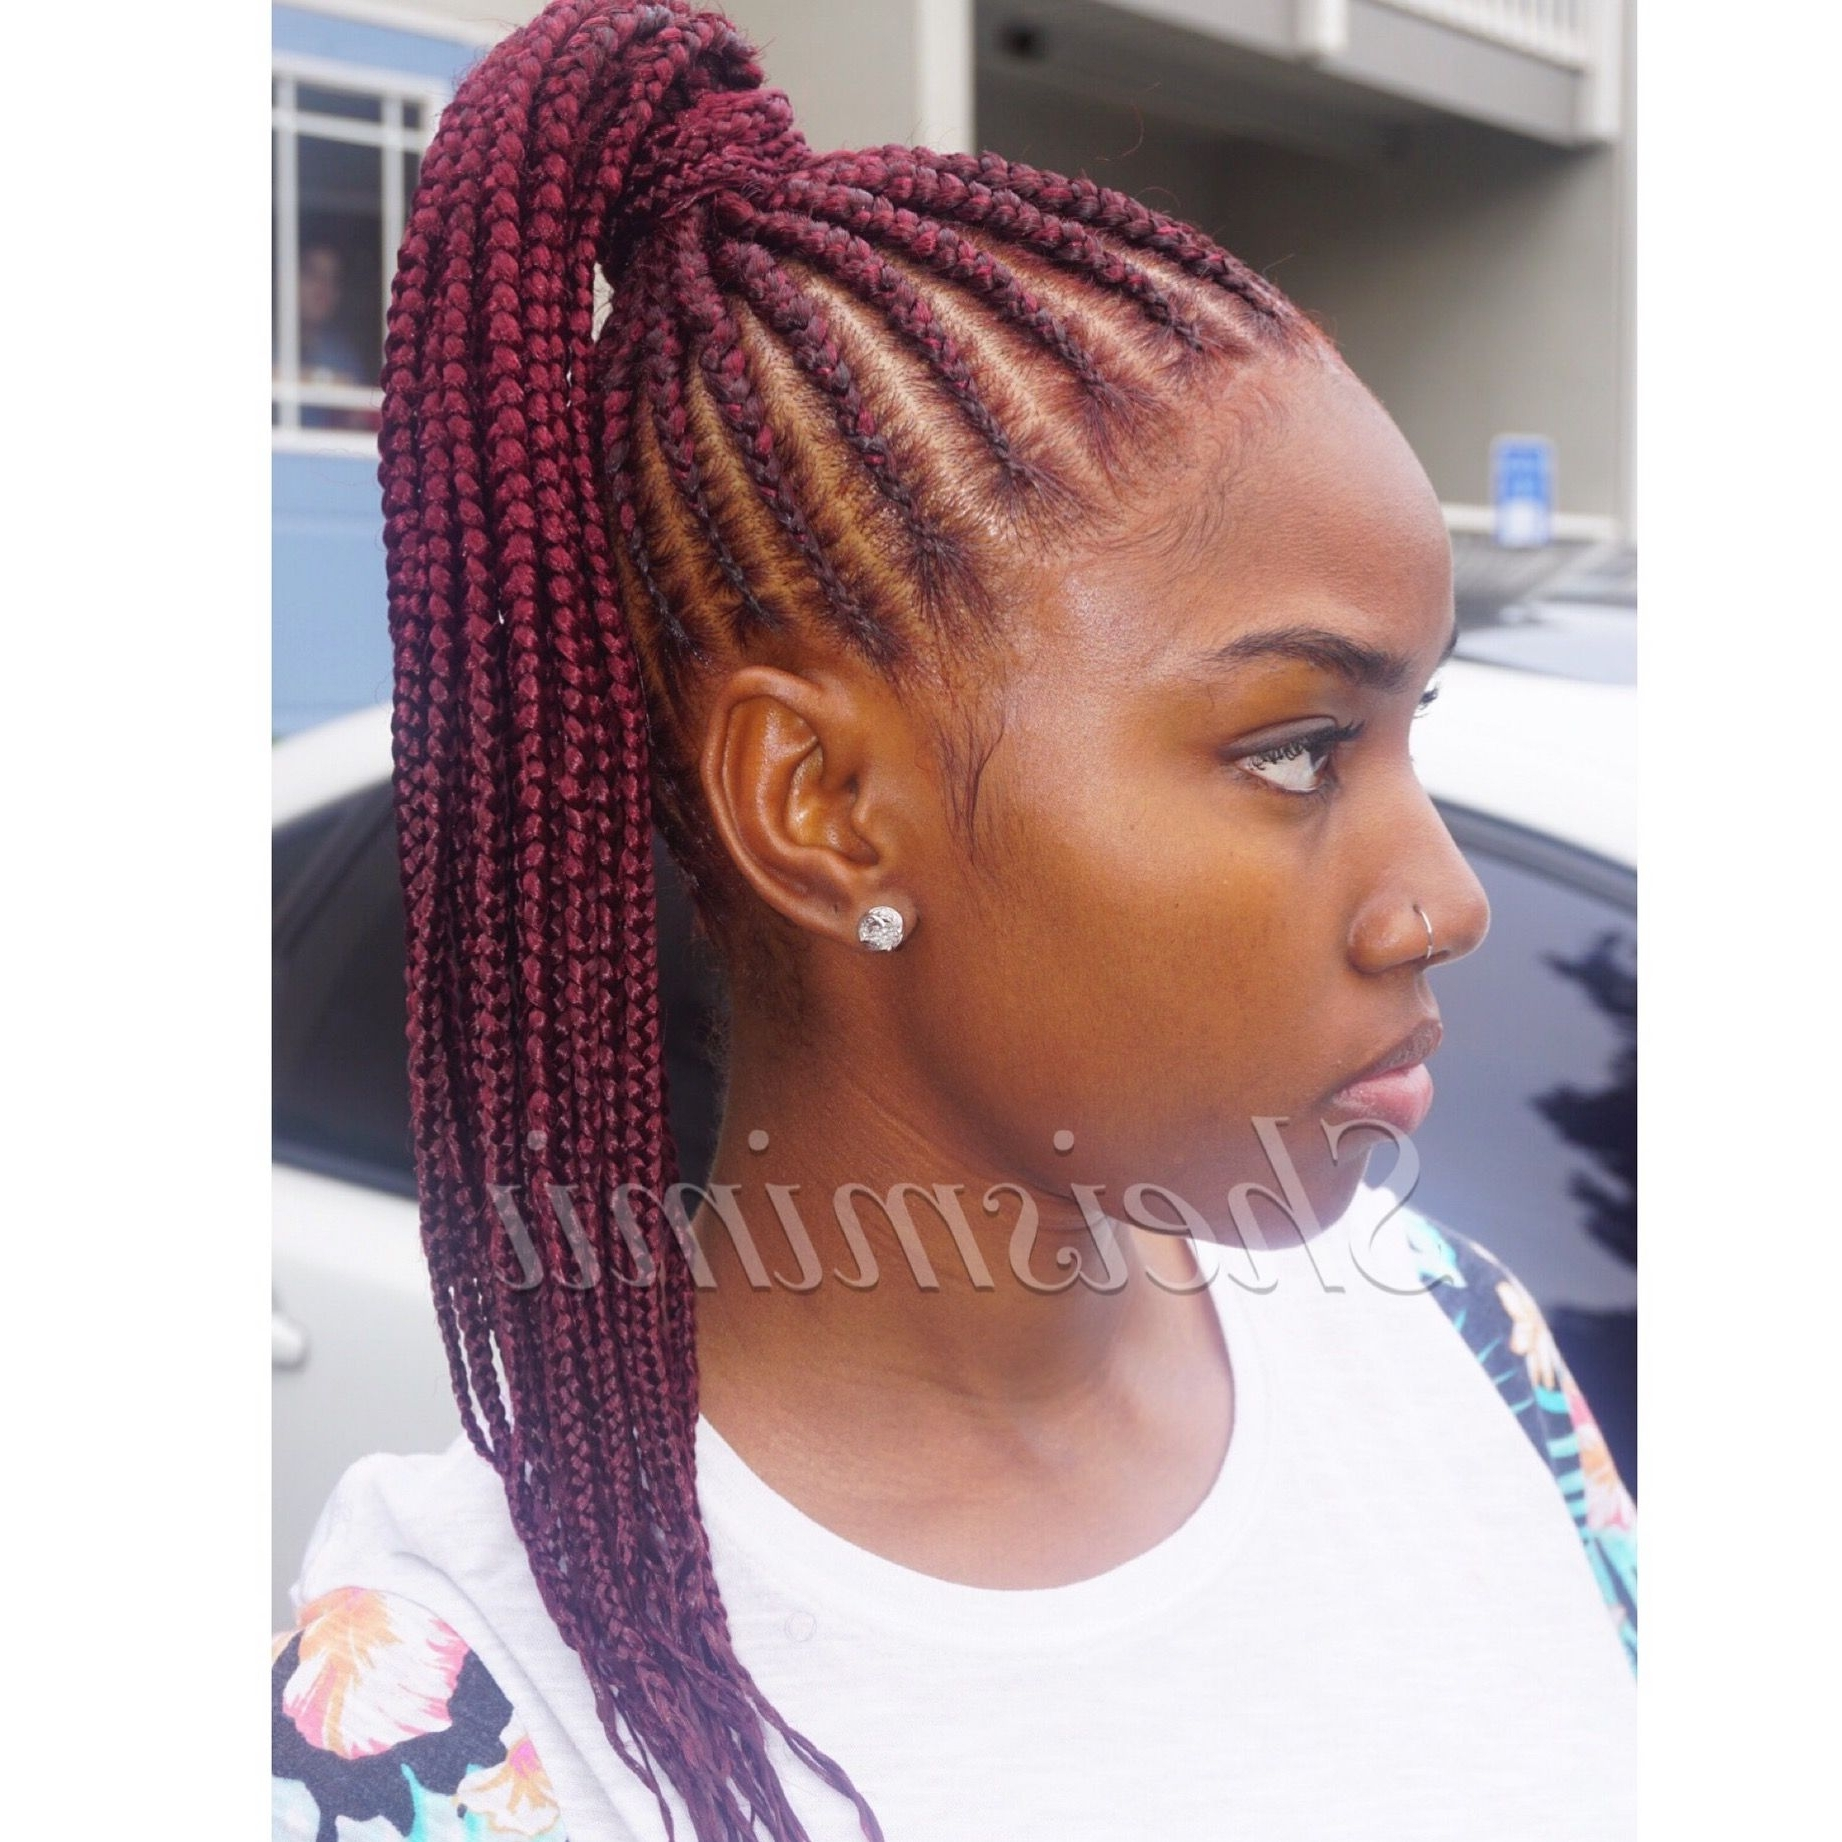 Trendy Braided Hairstyles In A Ponytail Within Feed In Braids Up Into A Ponytail! Protectivestyles, Braids, Feedin (View 2 of 15)